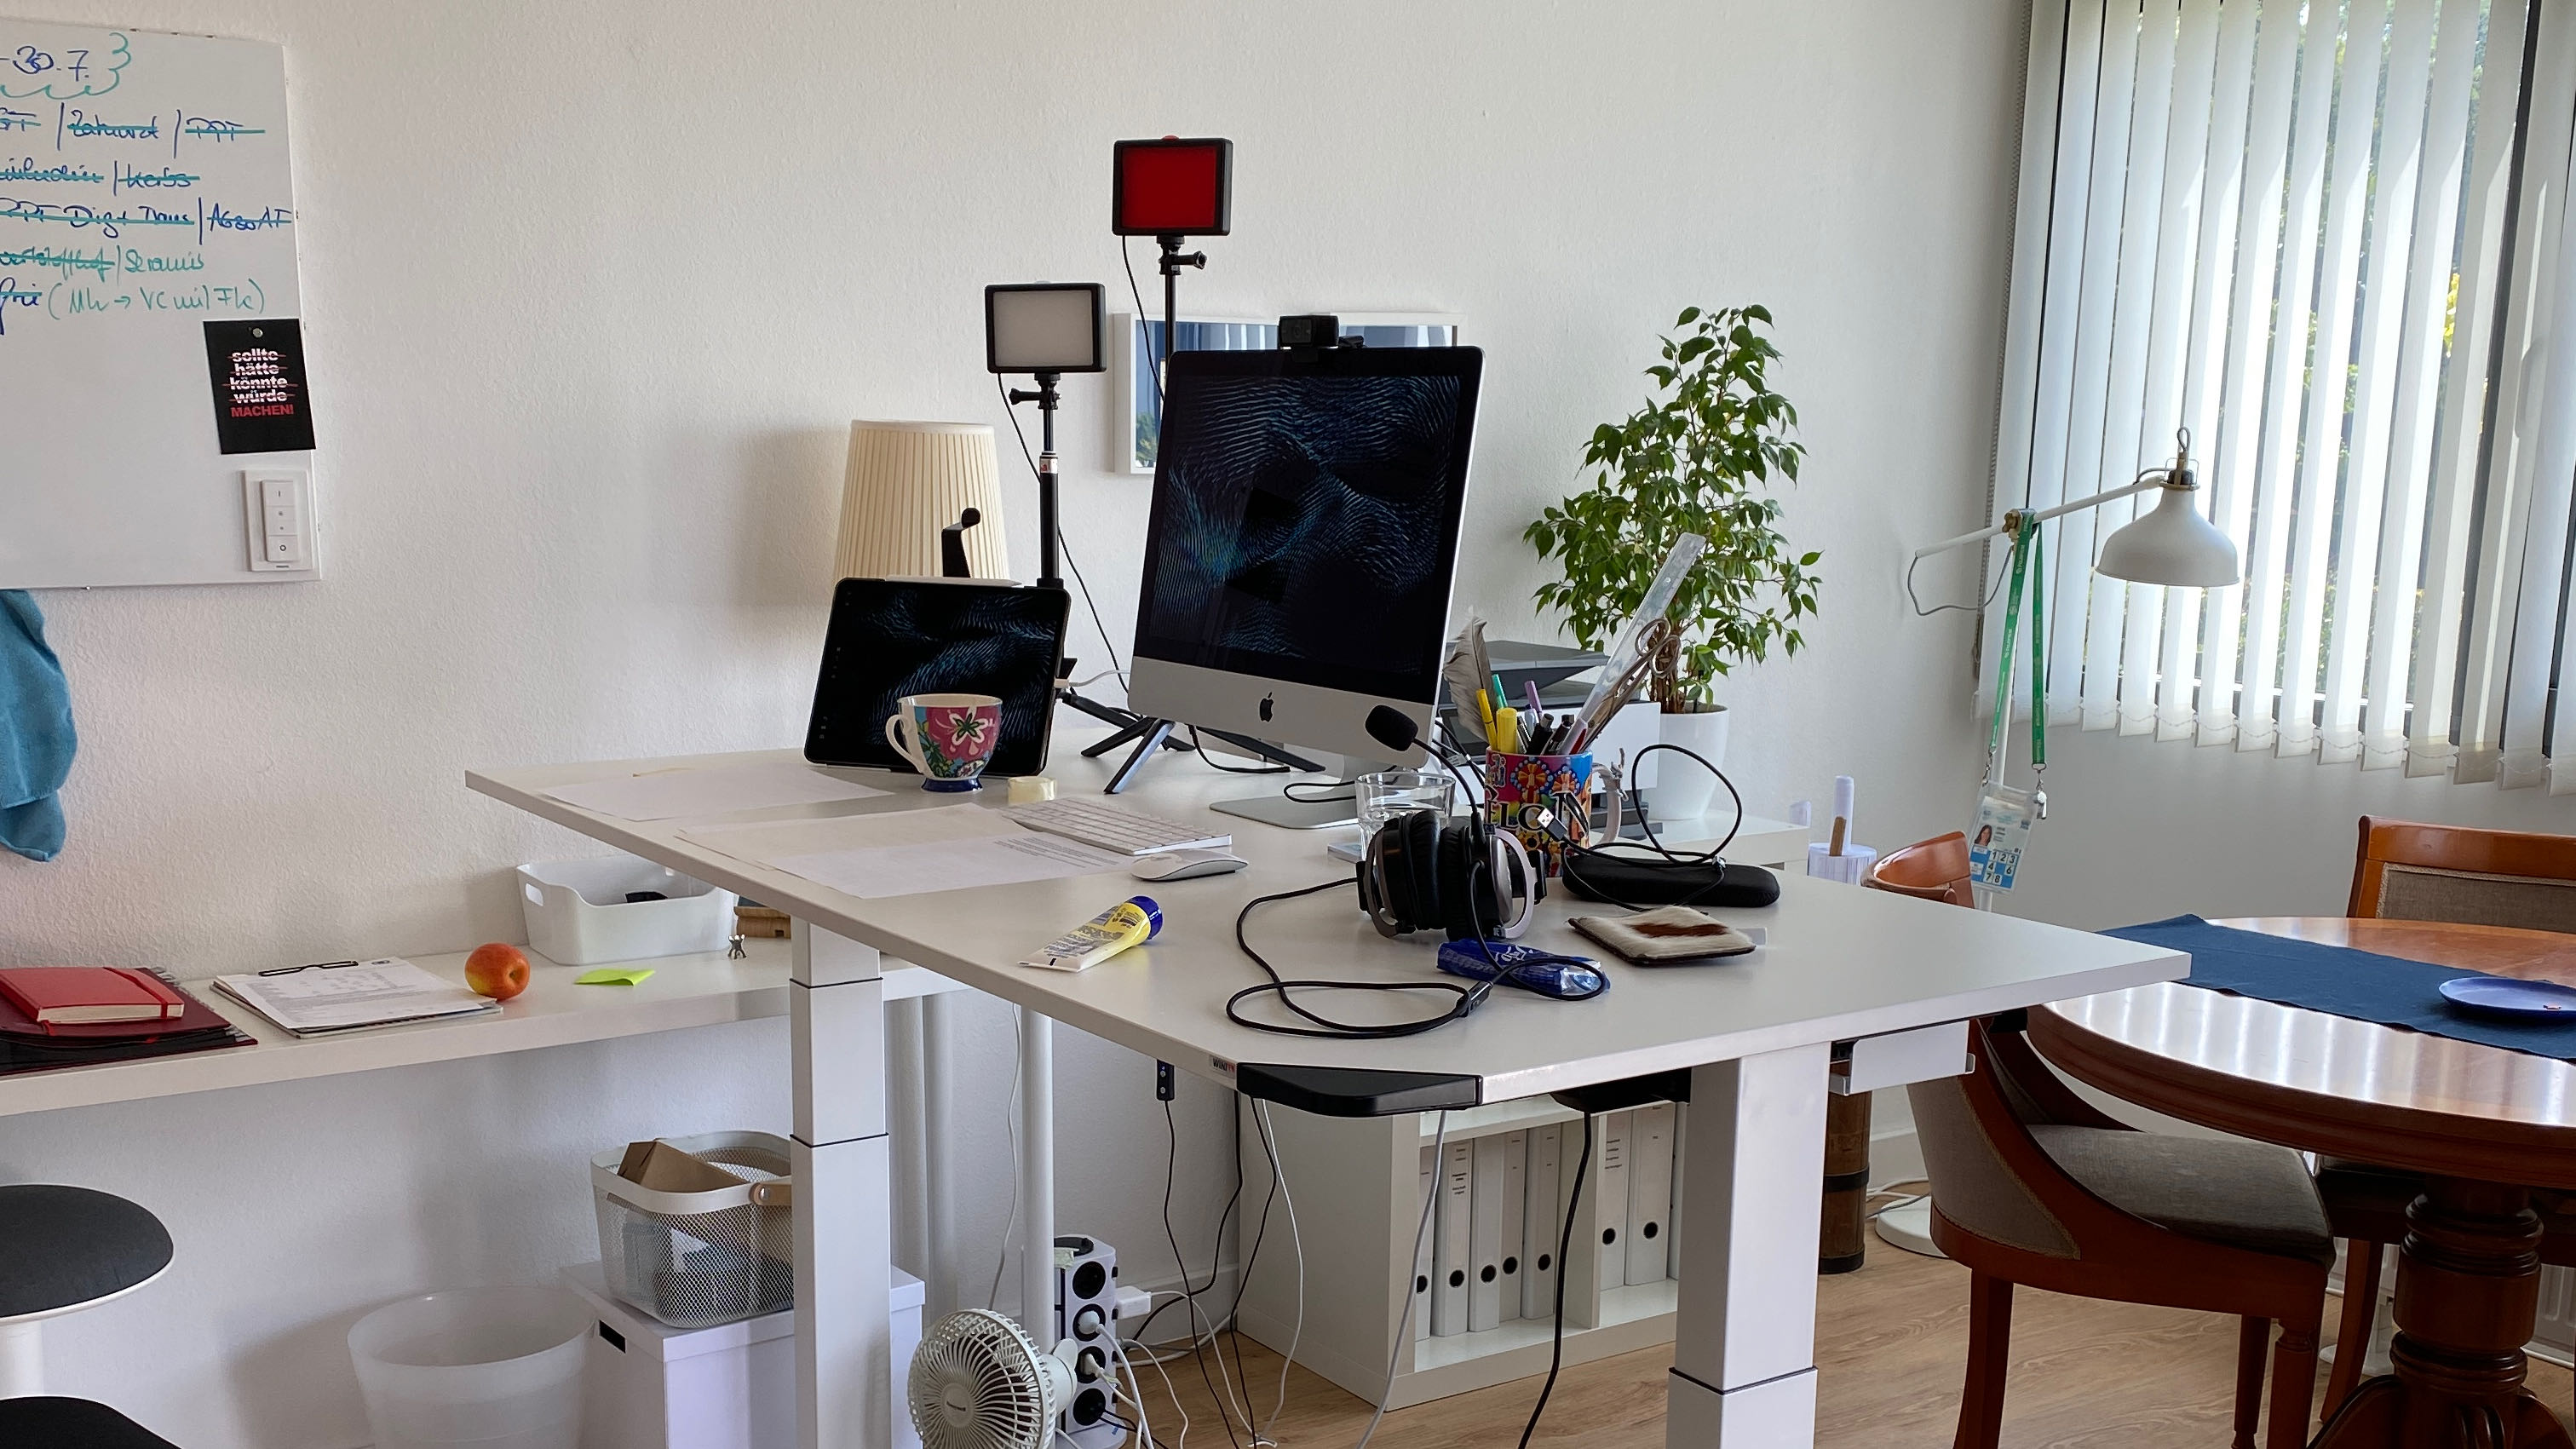 Home Office: Yes or No?